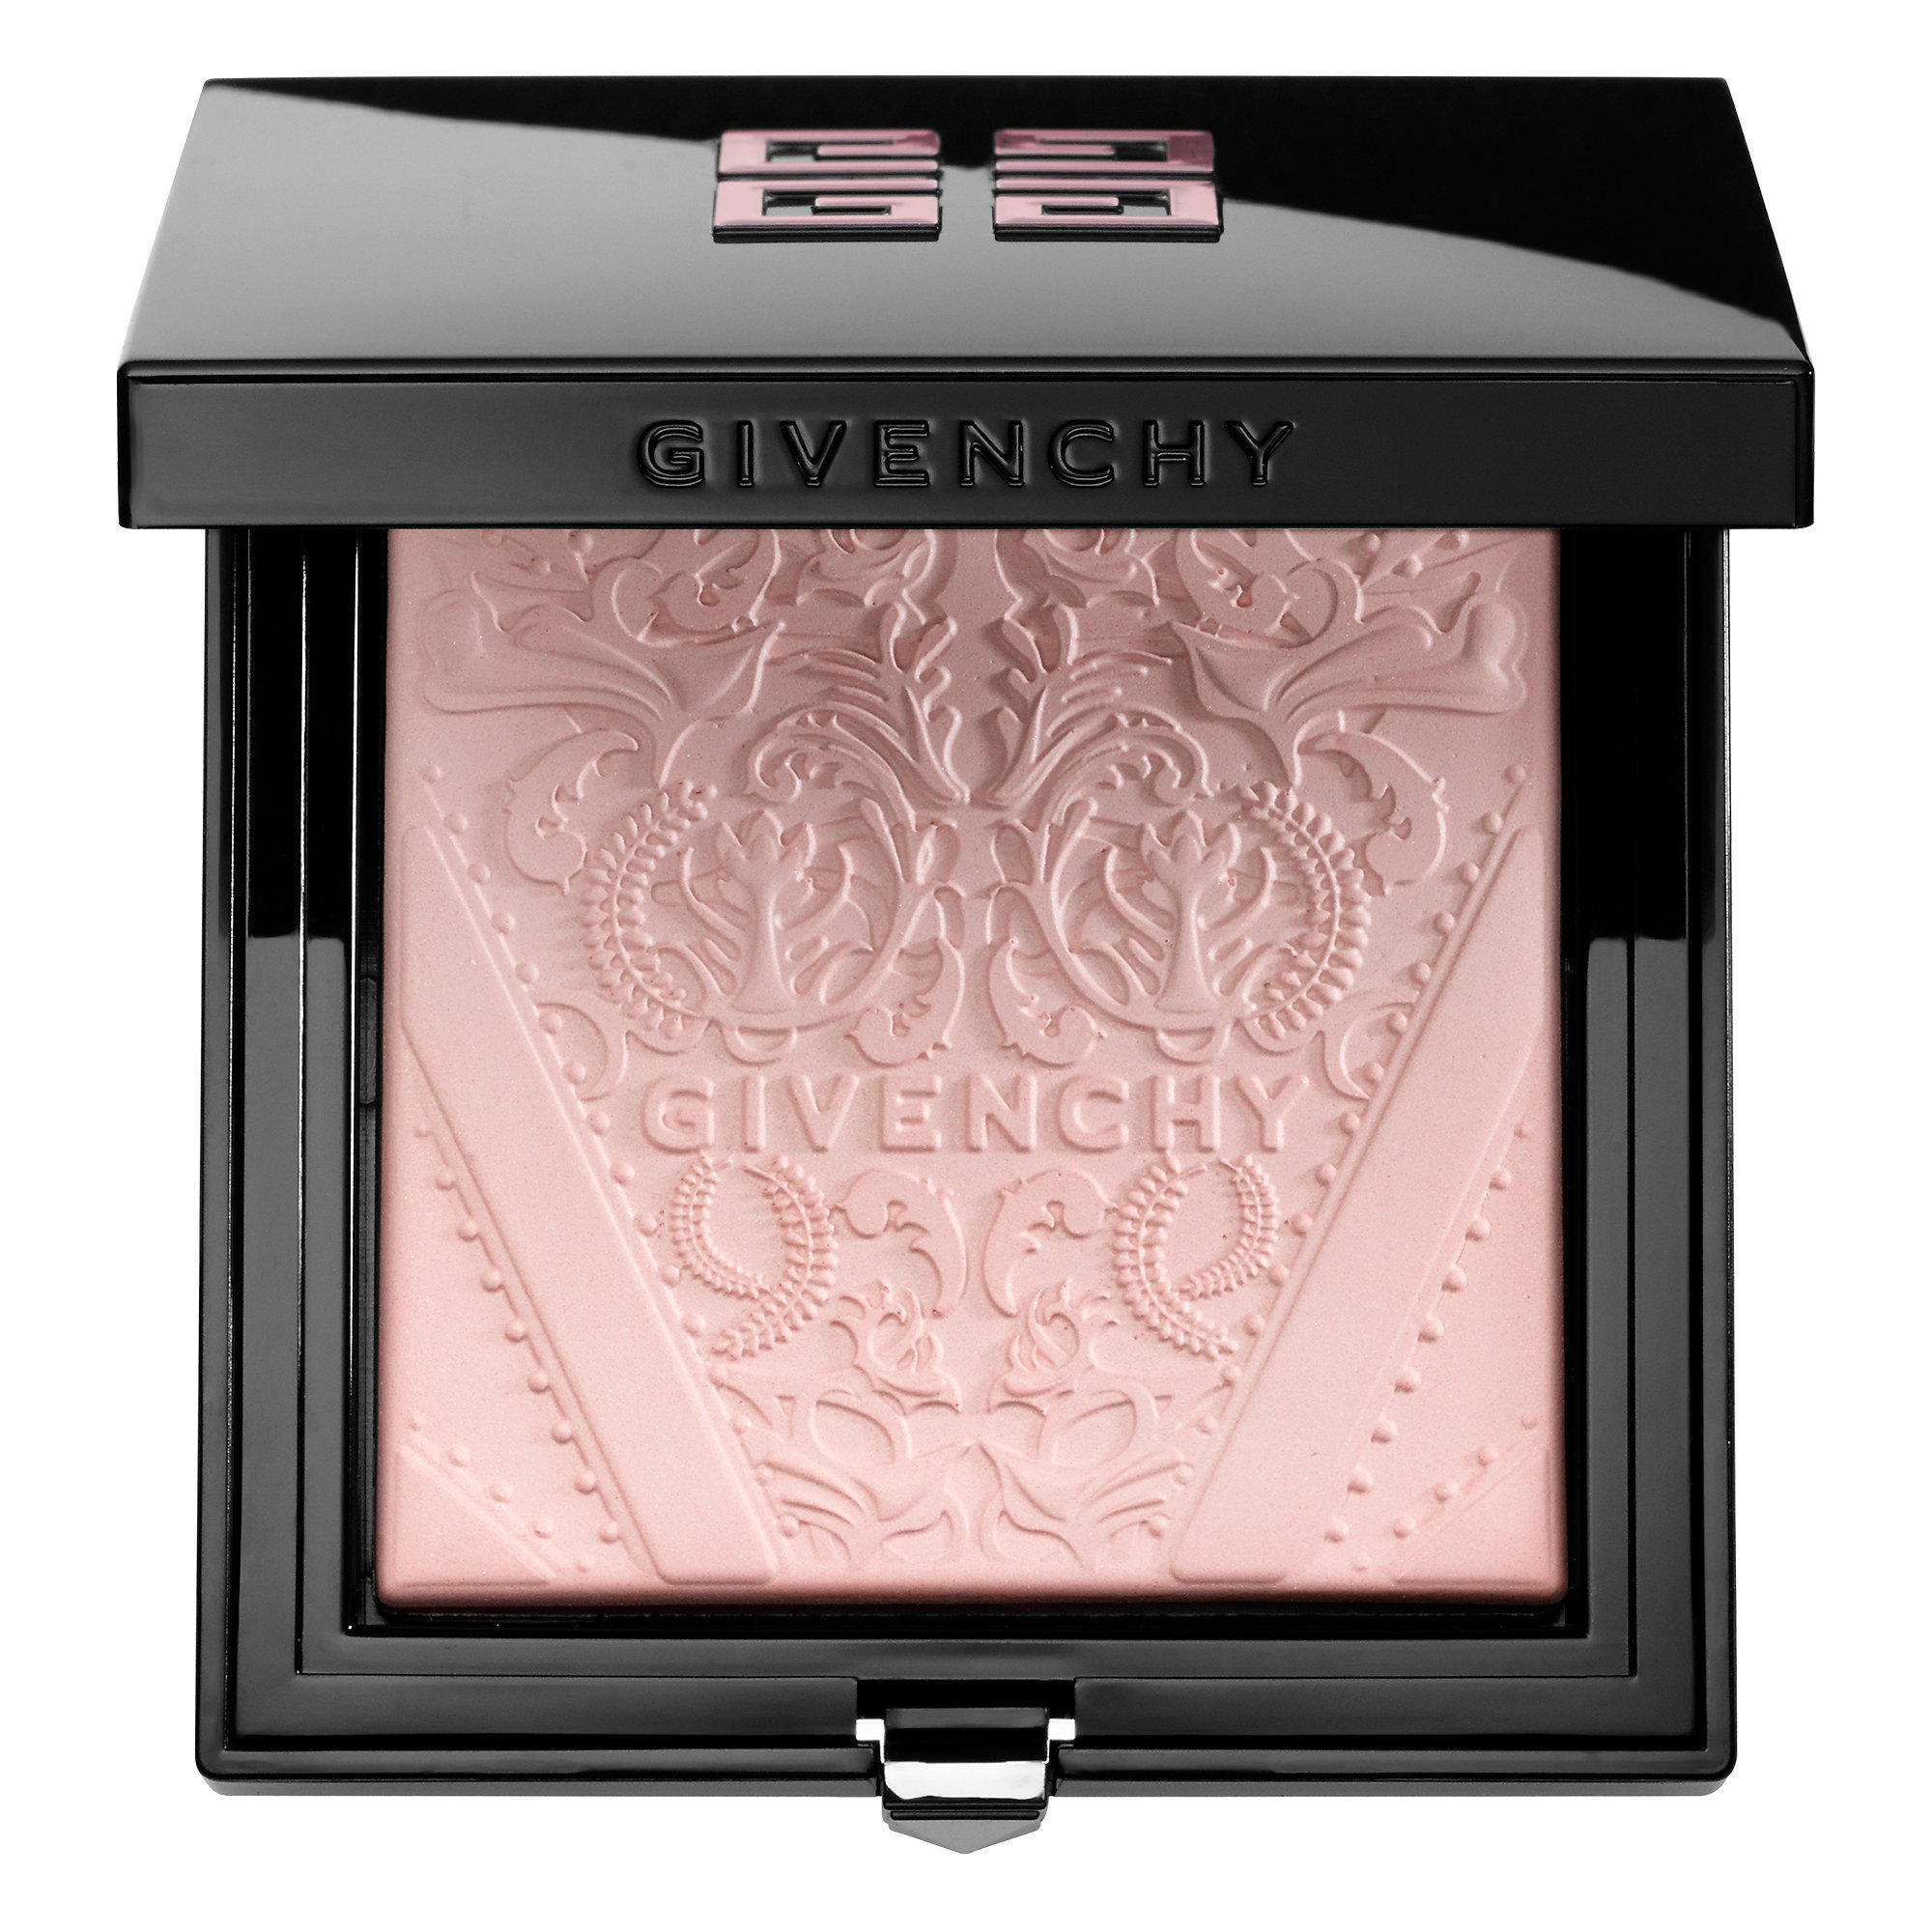 New Release Givenchy launched new Soft Powder Radiance Enhancer